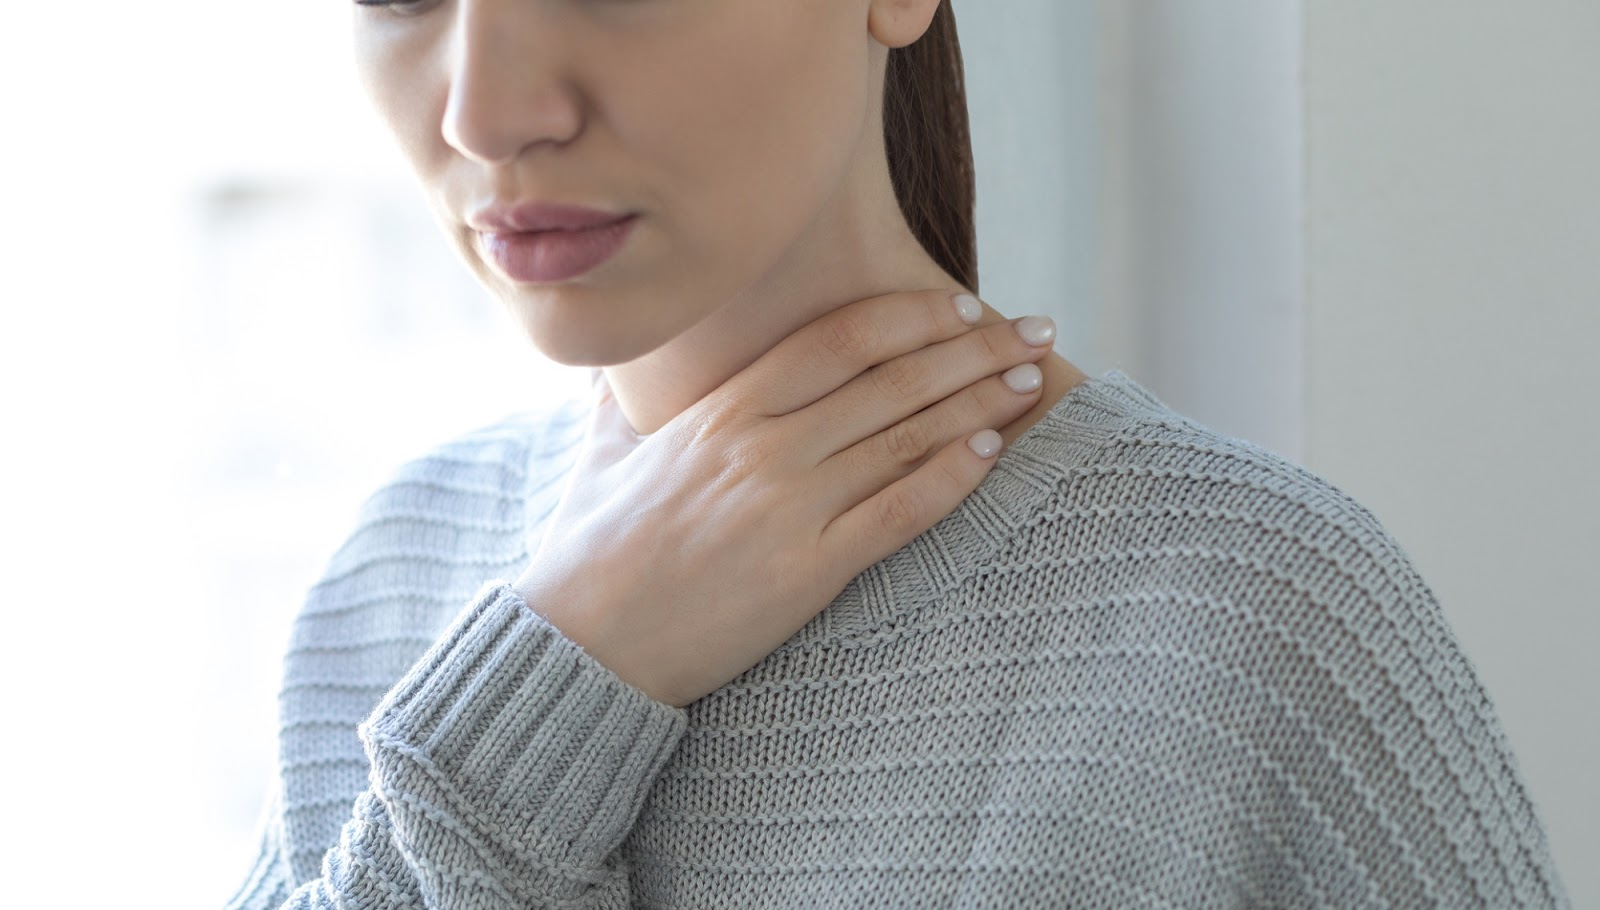 How long does a sore throat last?